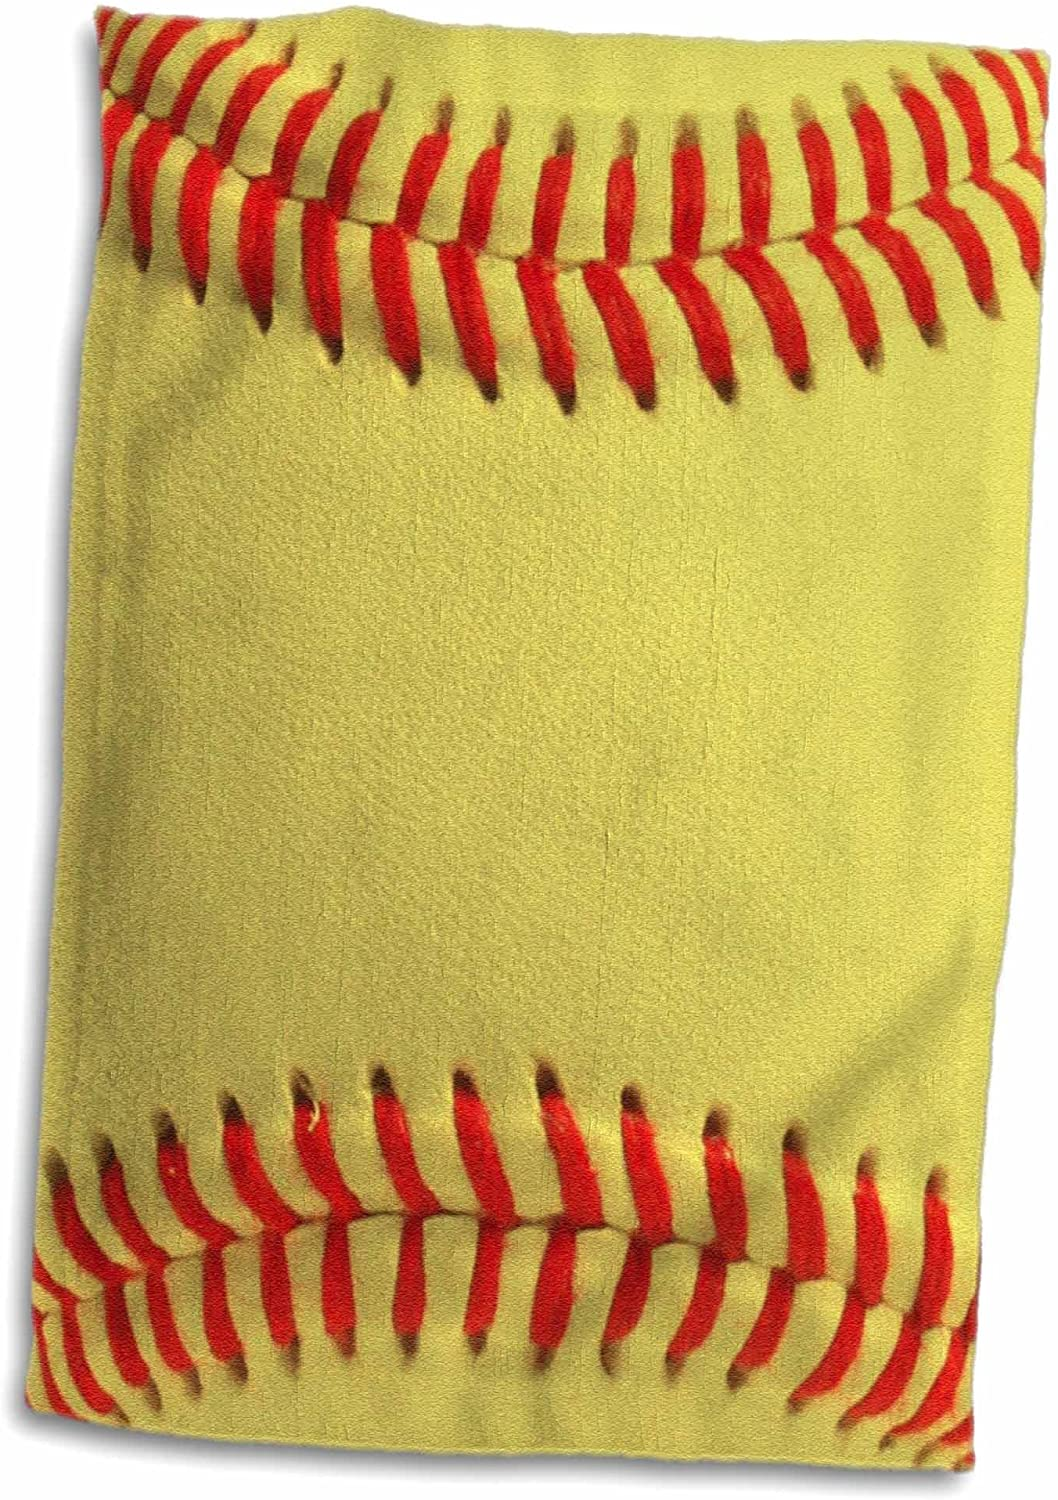 3D Rose Softball Close-Up Photography Print-Yellow and Red Soft Ball for Sporty Fans Team Players Hand/Sports Towel, 15 x 22, Multicolor